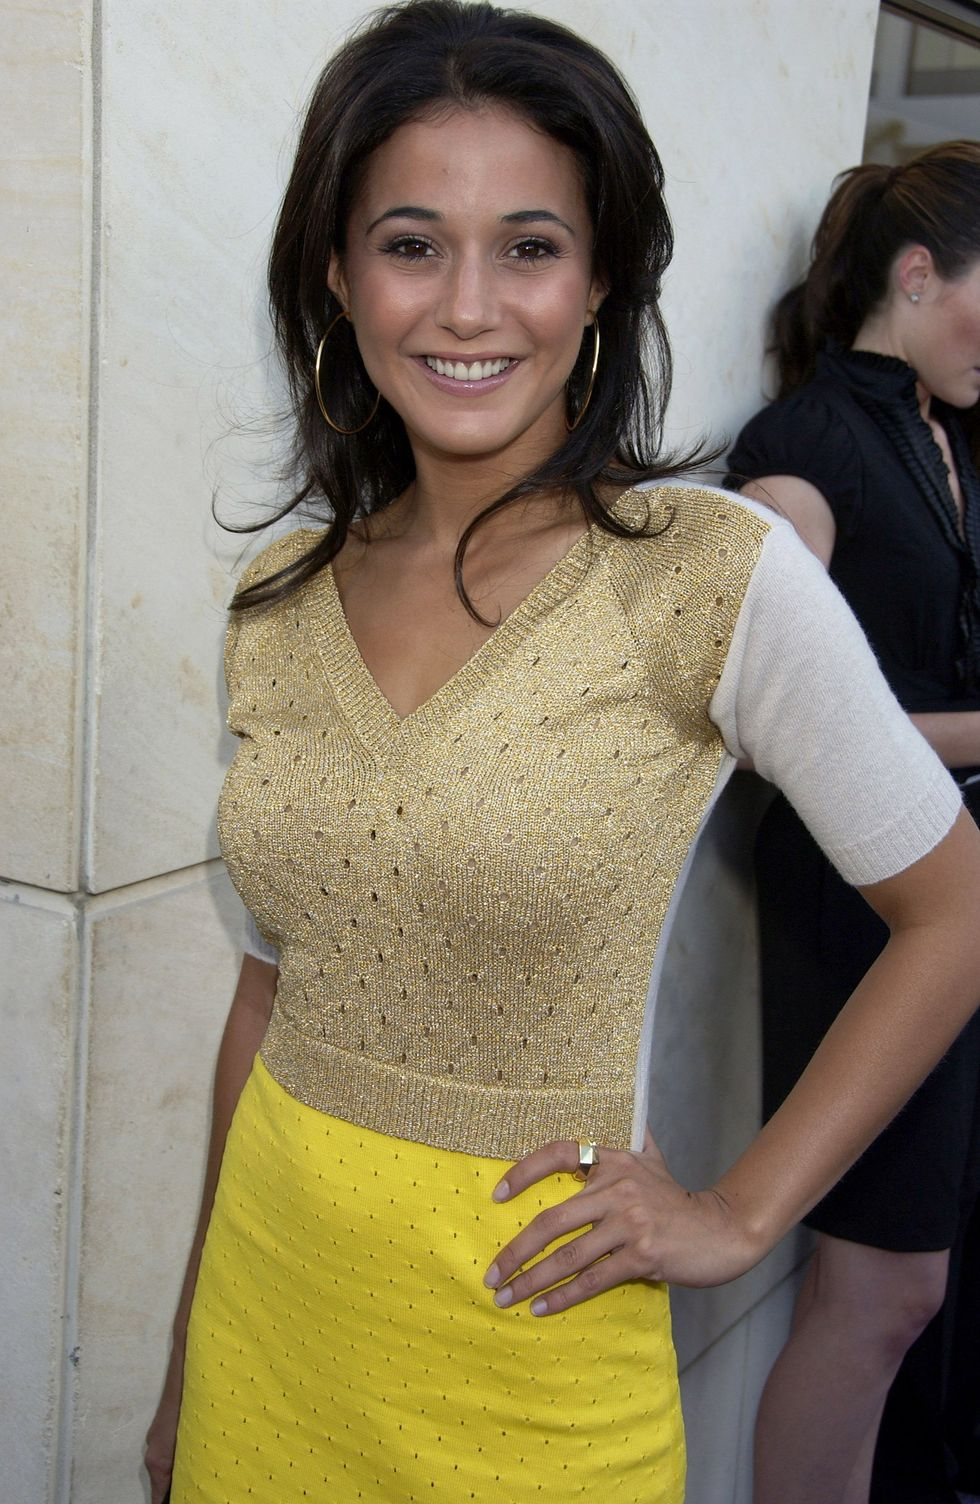 emmanuelle-chriqui-vanity-fair-party-hosted-by-louis-vuitton-in-beverly-hills-01